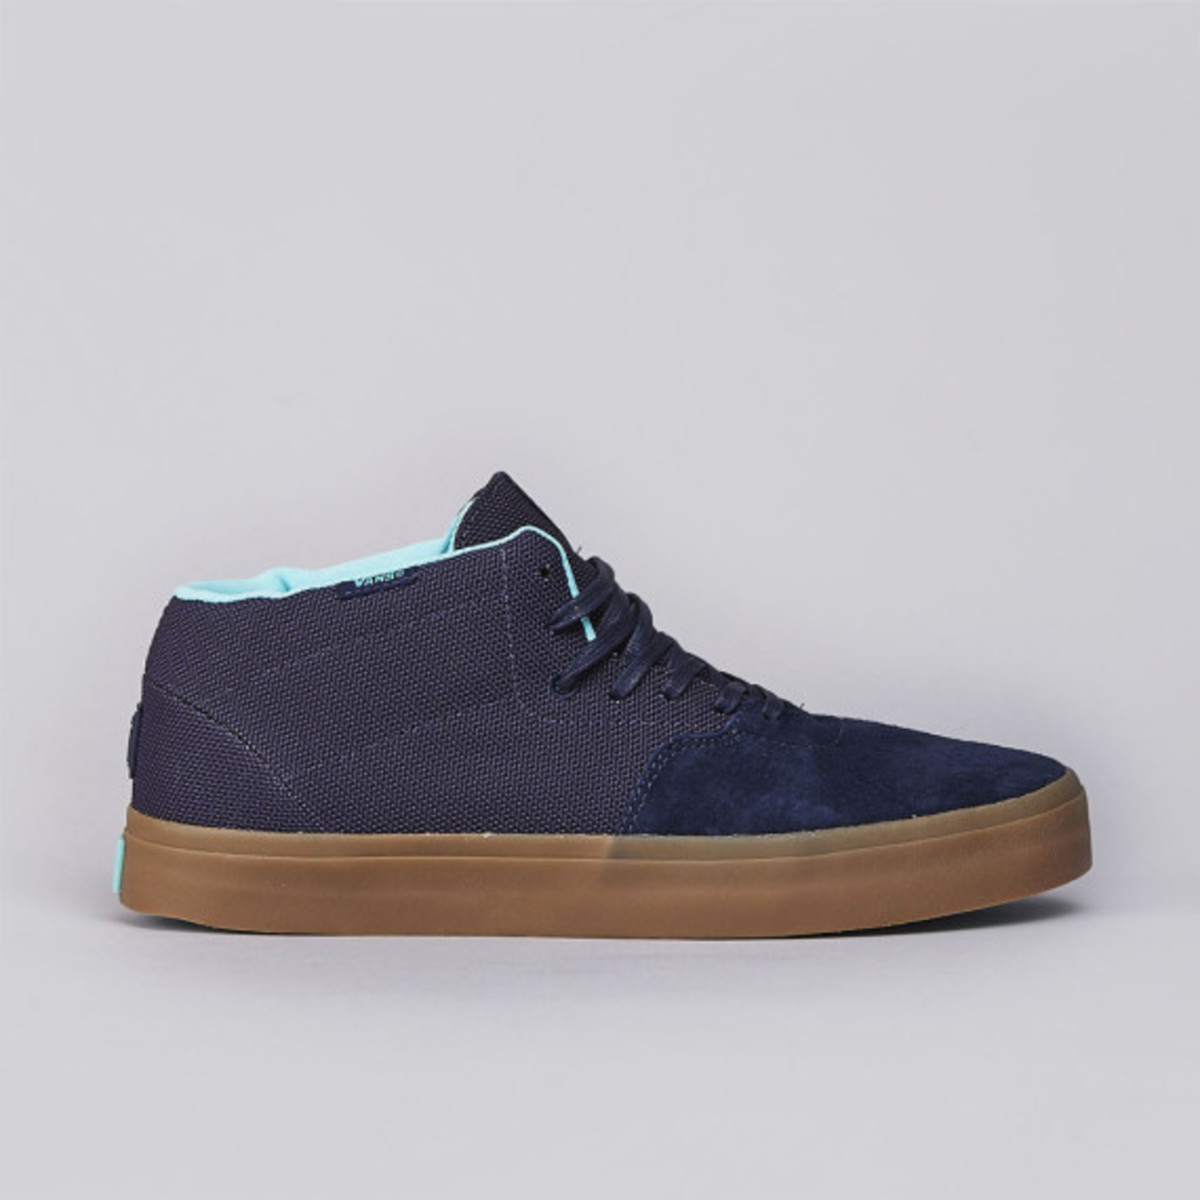 "VANS Syndicate Cab Lite ""S"" - June 2013 Releases - 7"